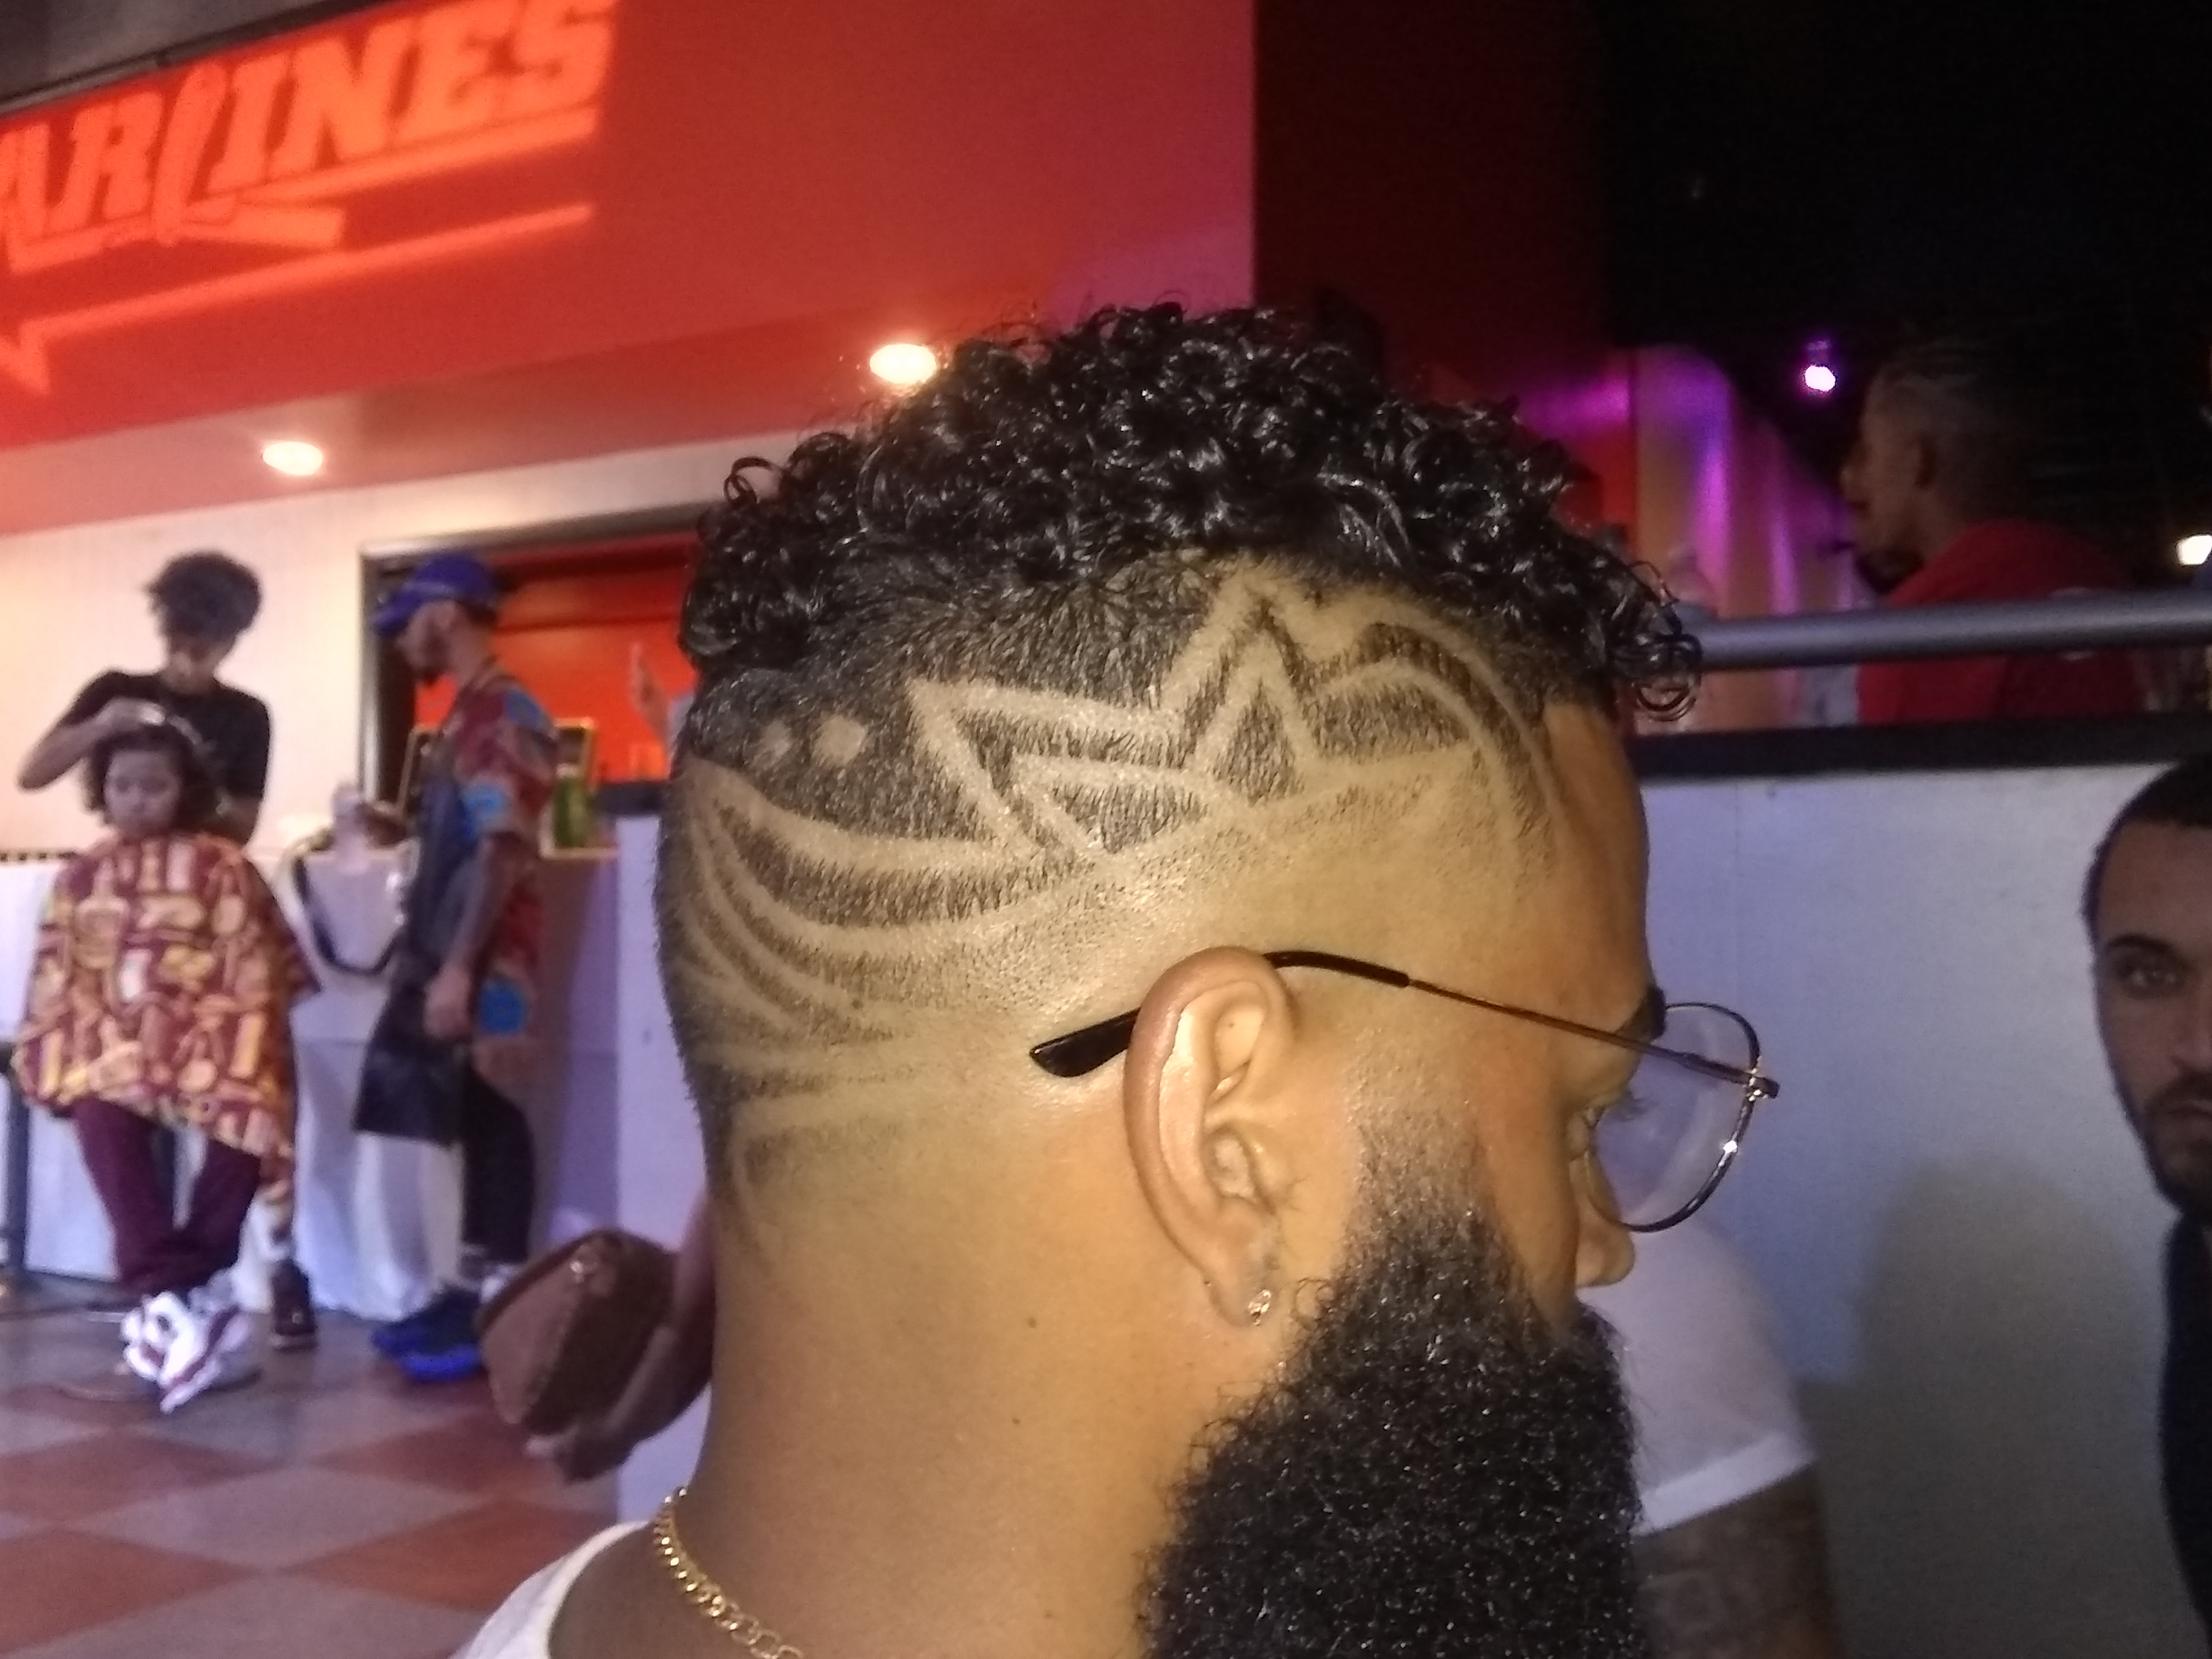 The Buzz Barbertime